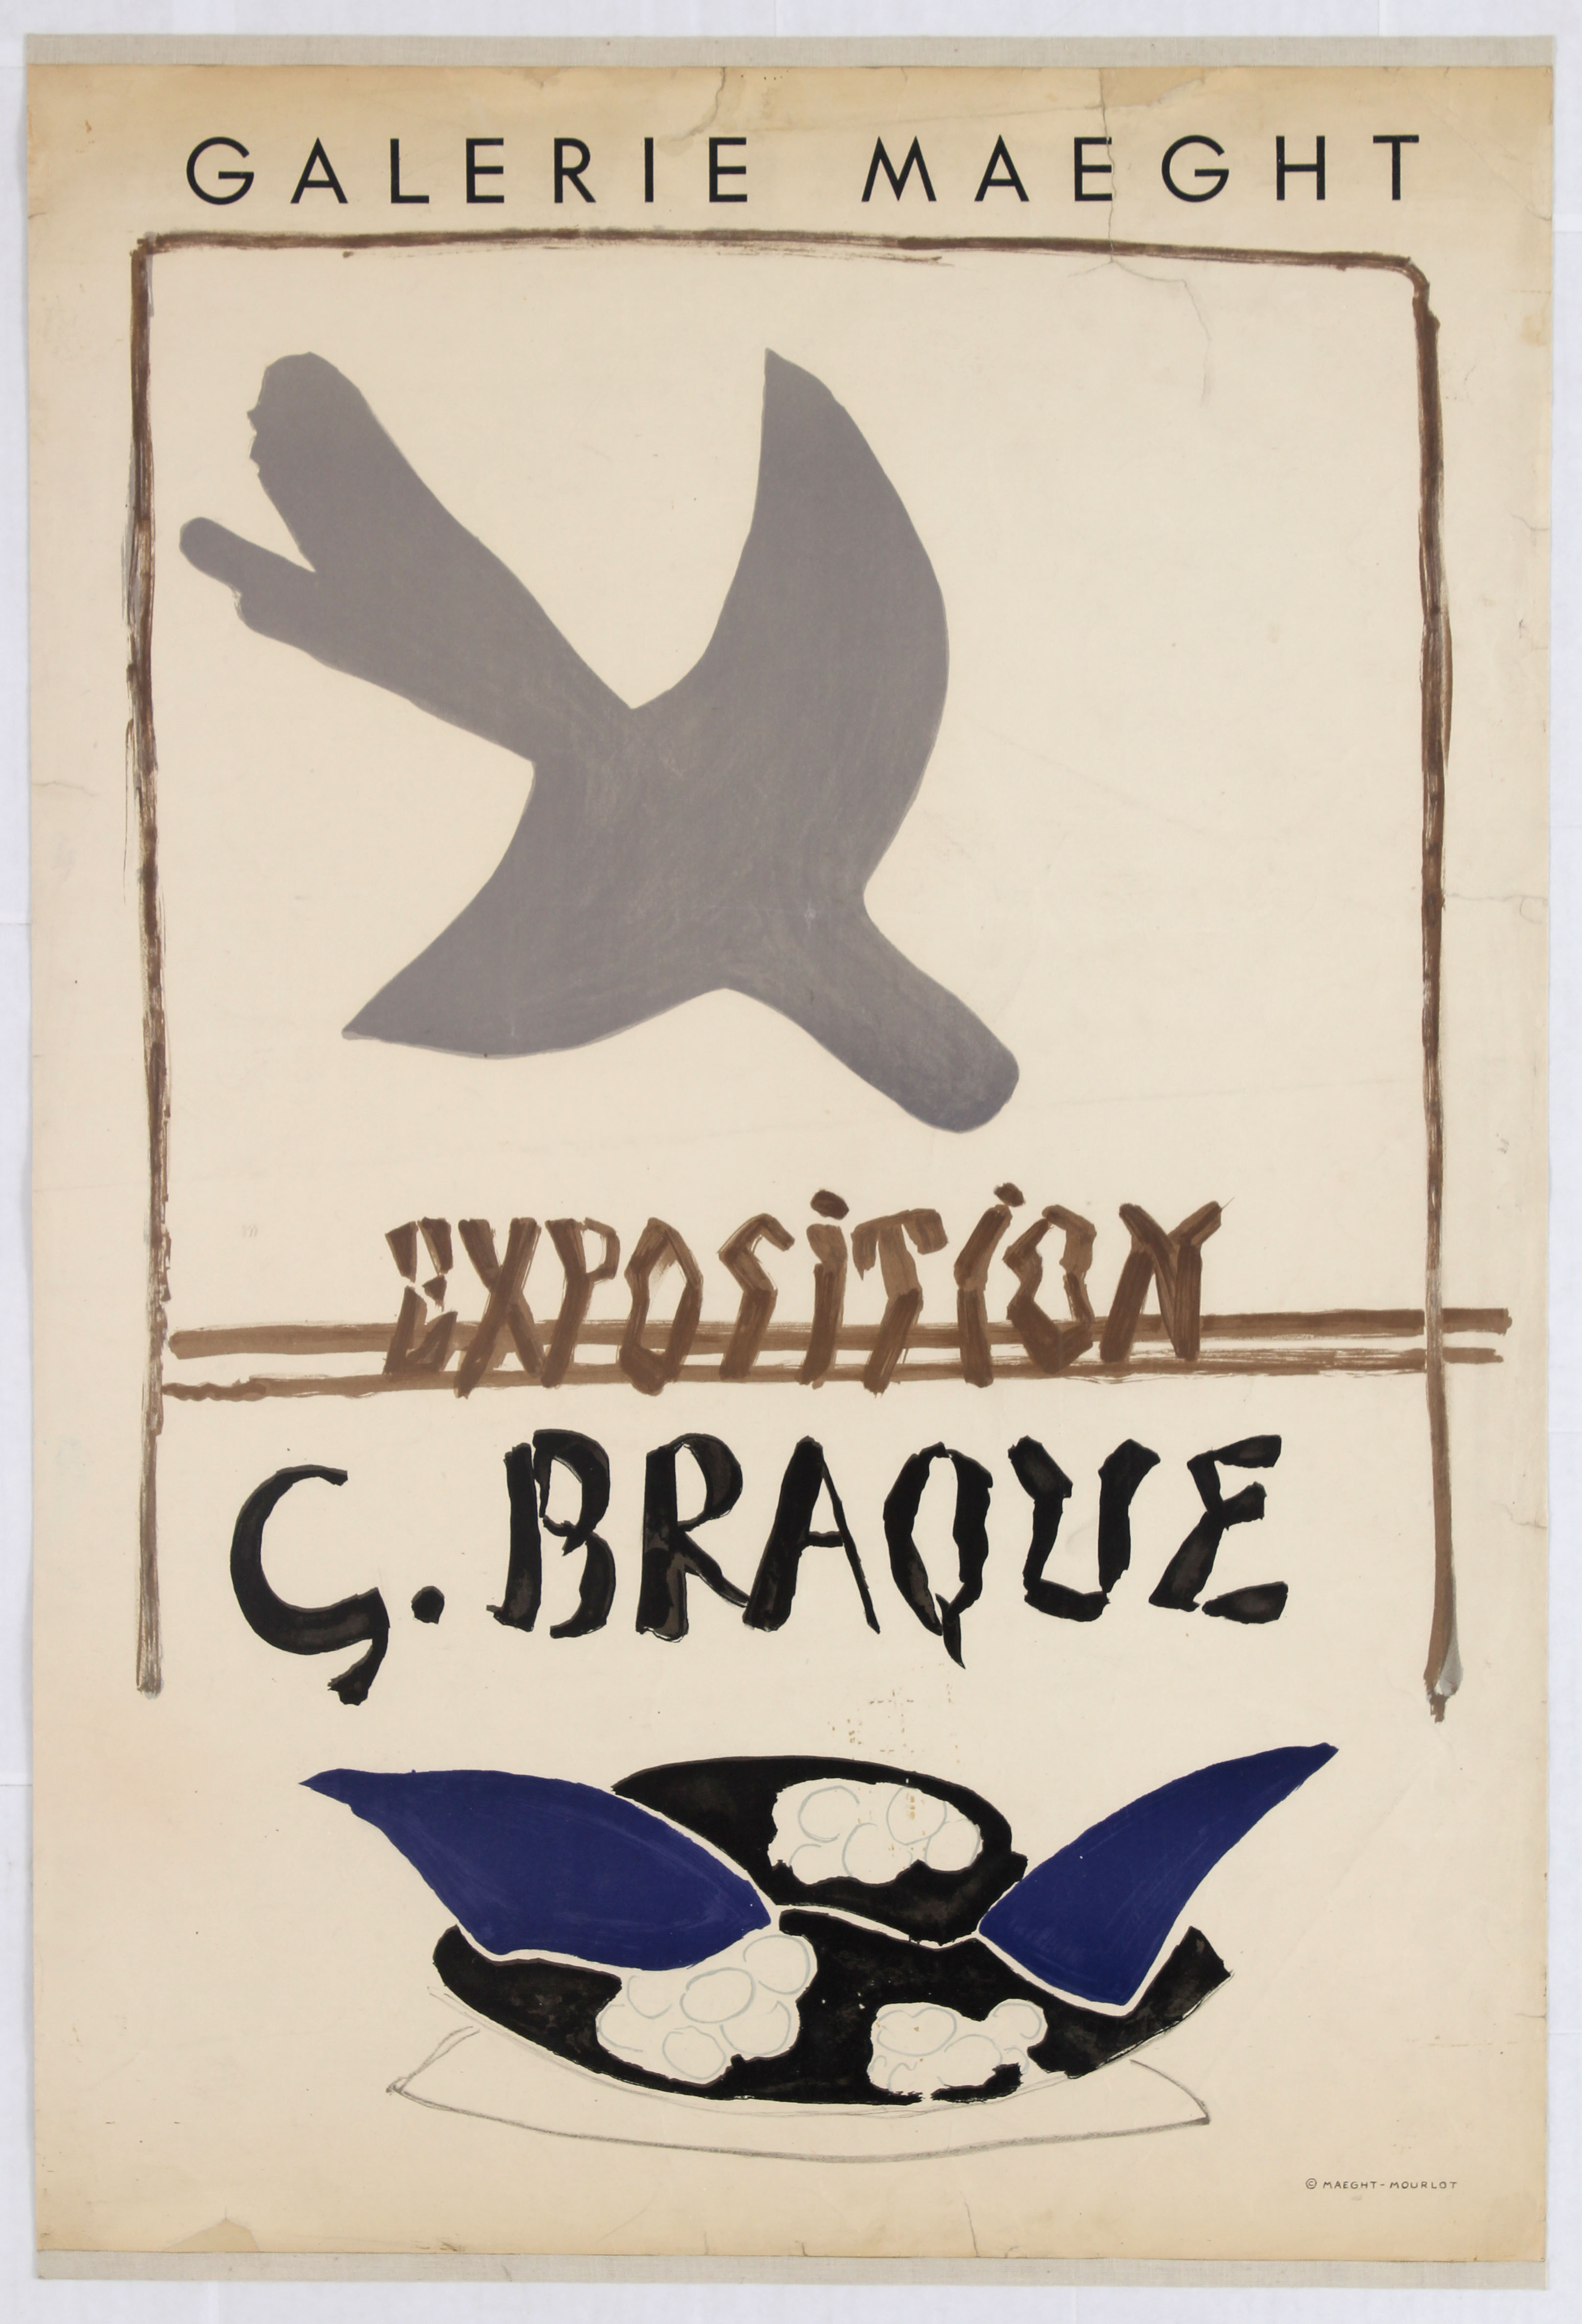 Lot 1501 - Exhibition Poster Exposition George Braque Gallery Maeght